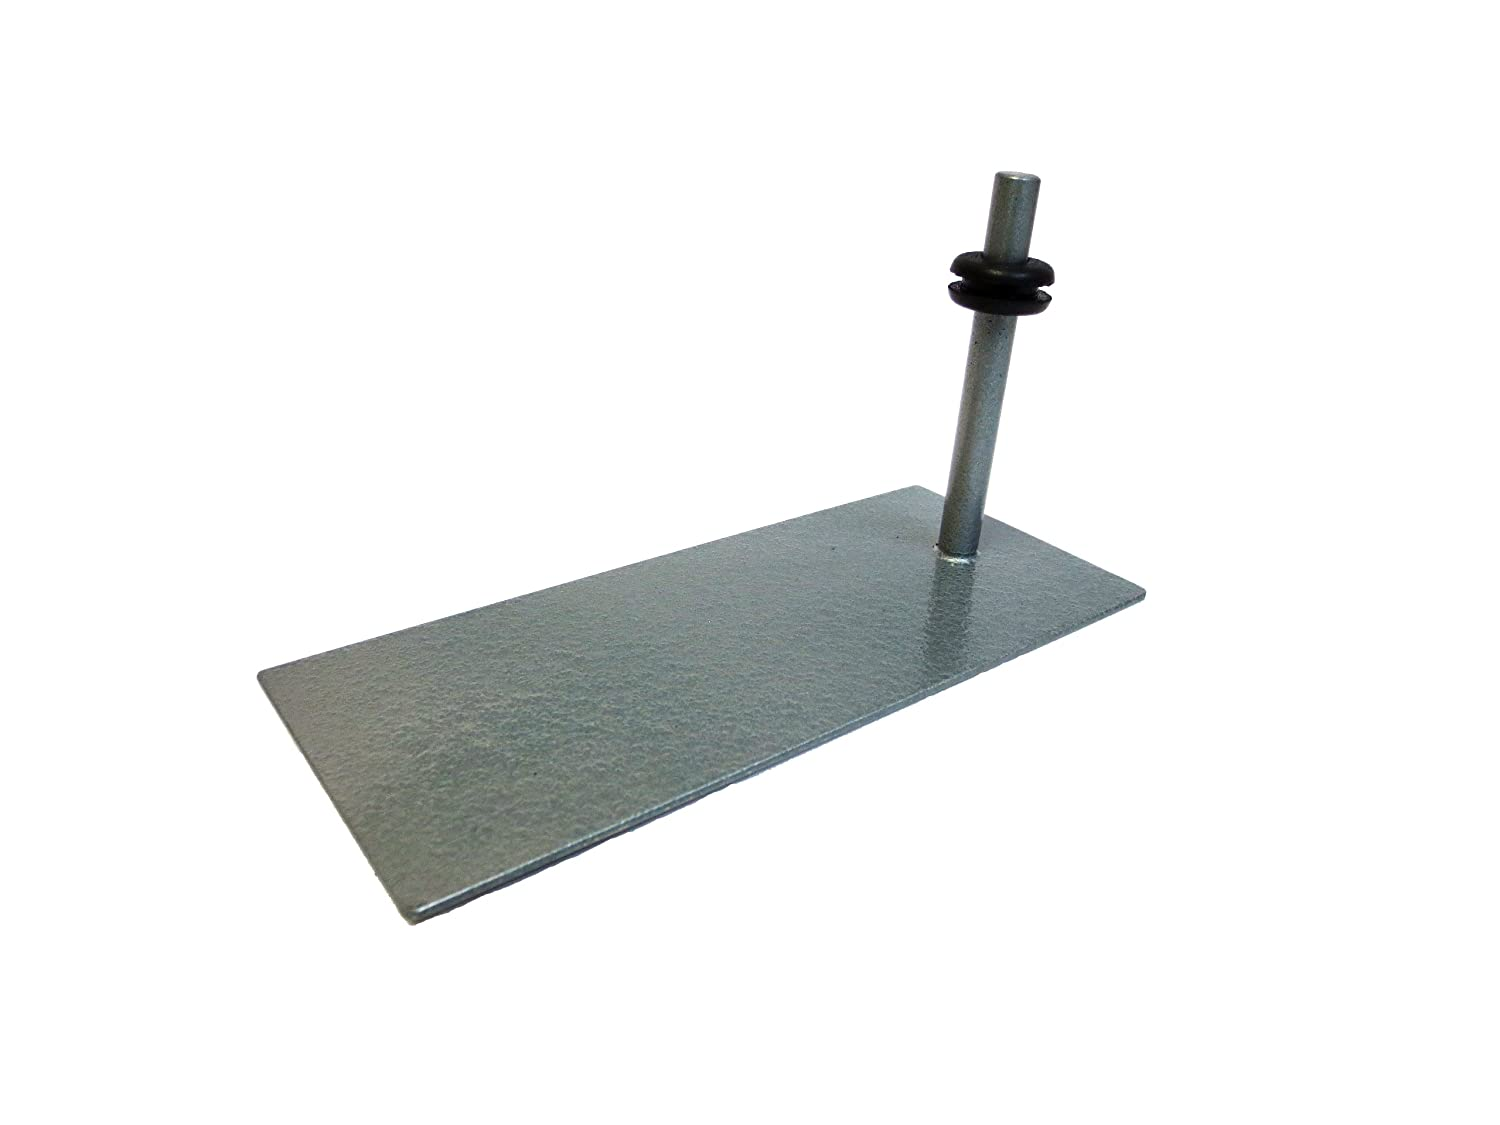 Hansenfutz F2 Training and Percussion Pedal FSS Steel Percussion Holder